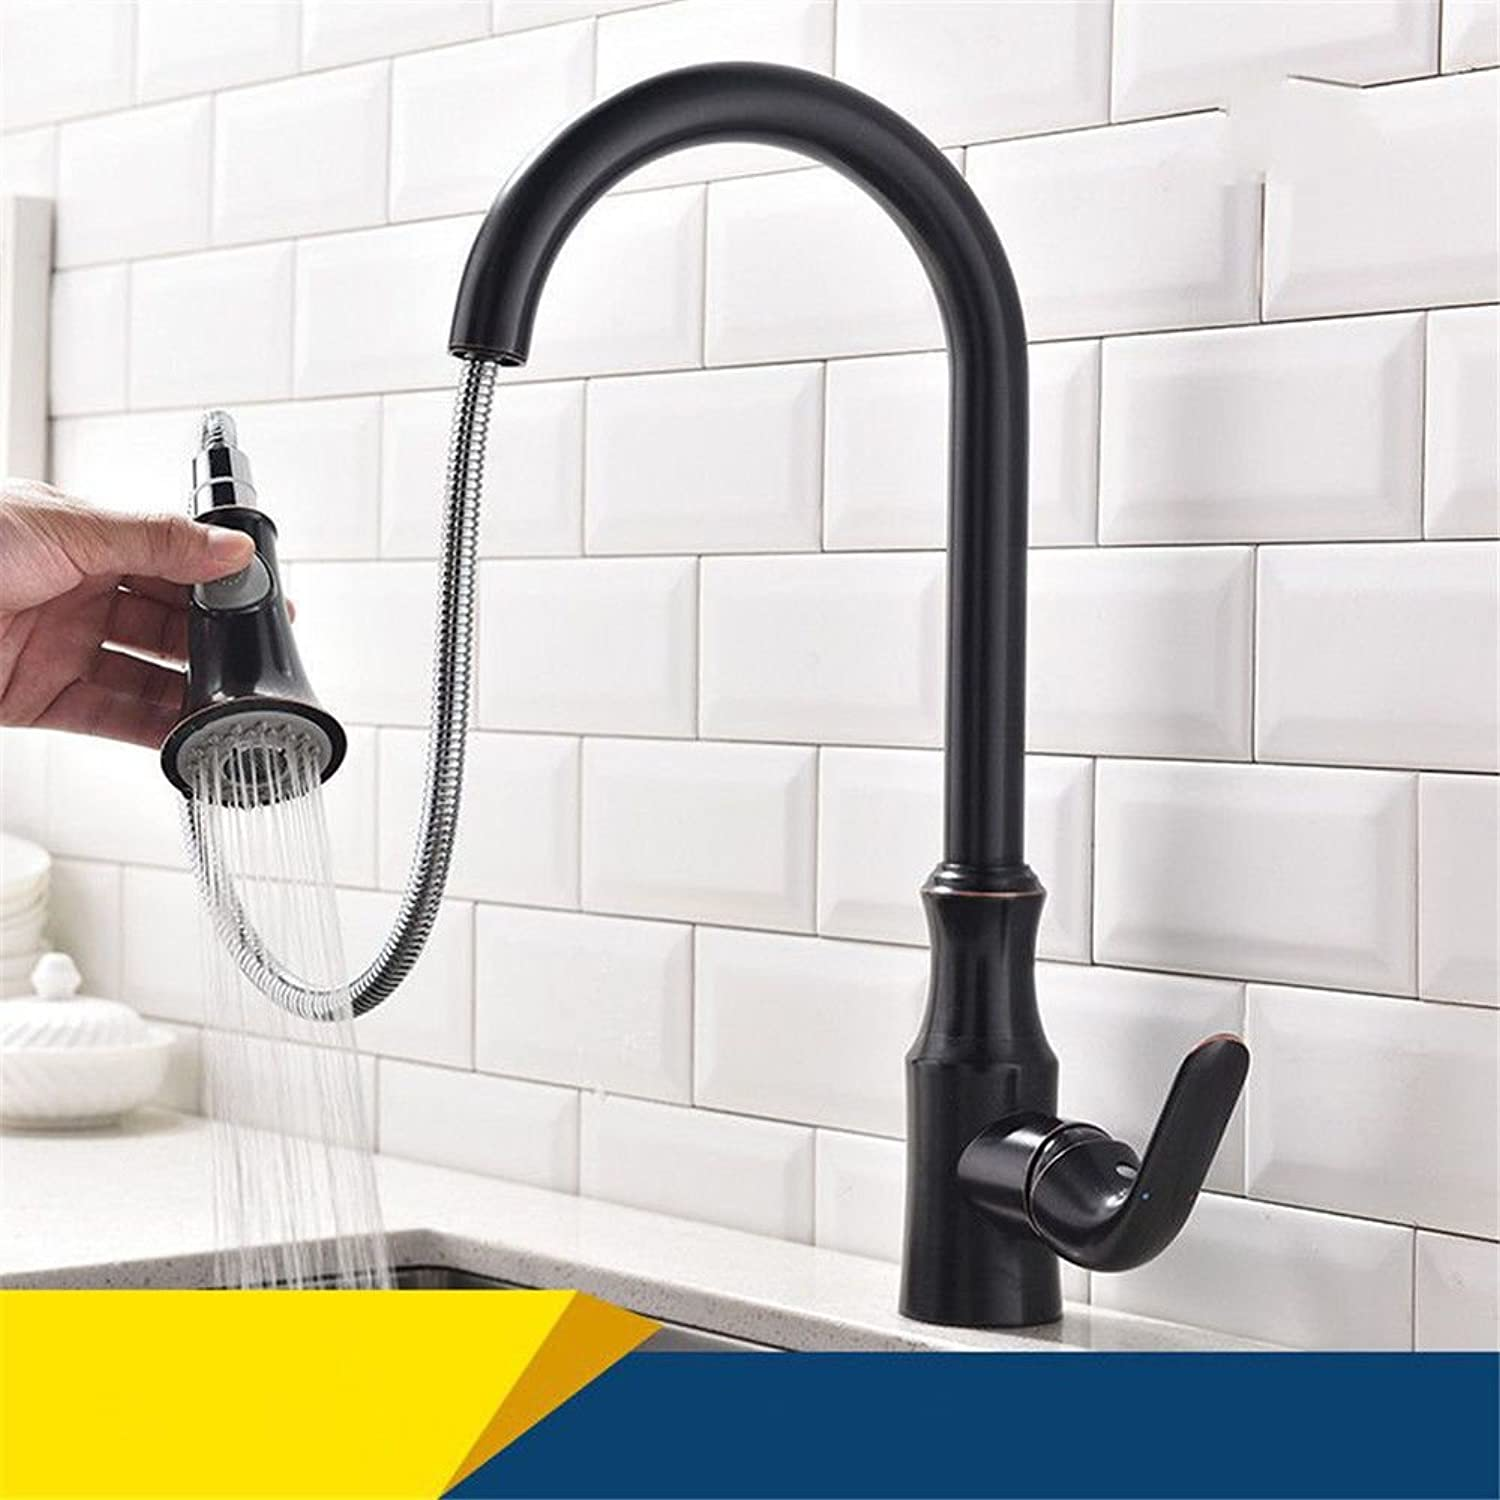 Hlluya Professional Sink Mixer Tap Kitchen Faucet Retro pull-down kitchen faucet hot and cold water mixing valve retractable black sink washing dishes basin mixer